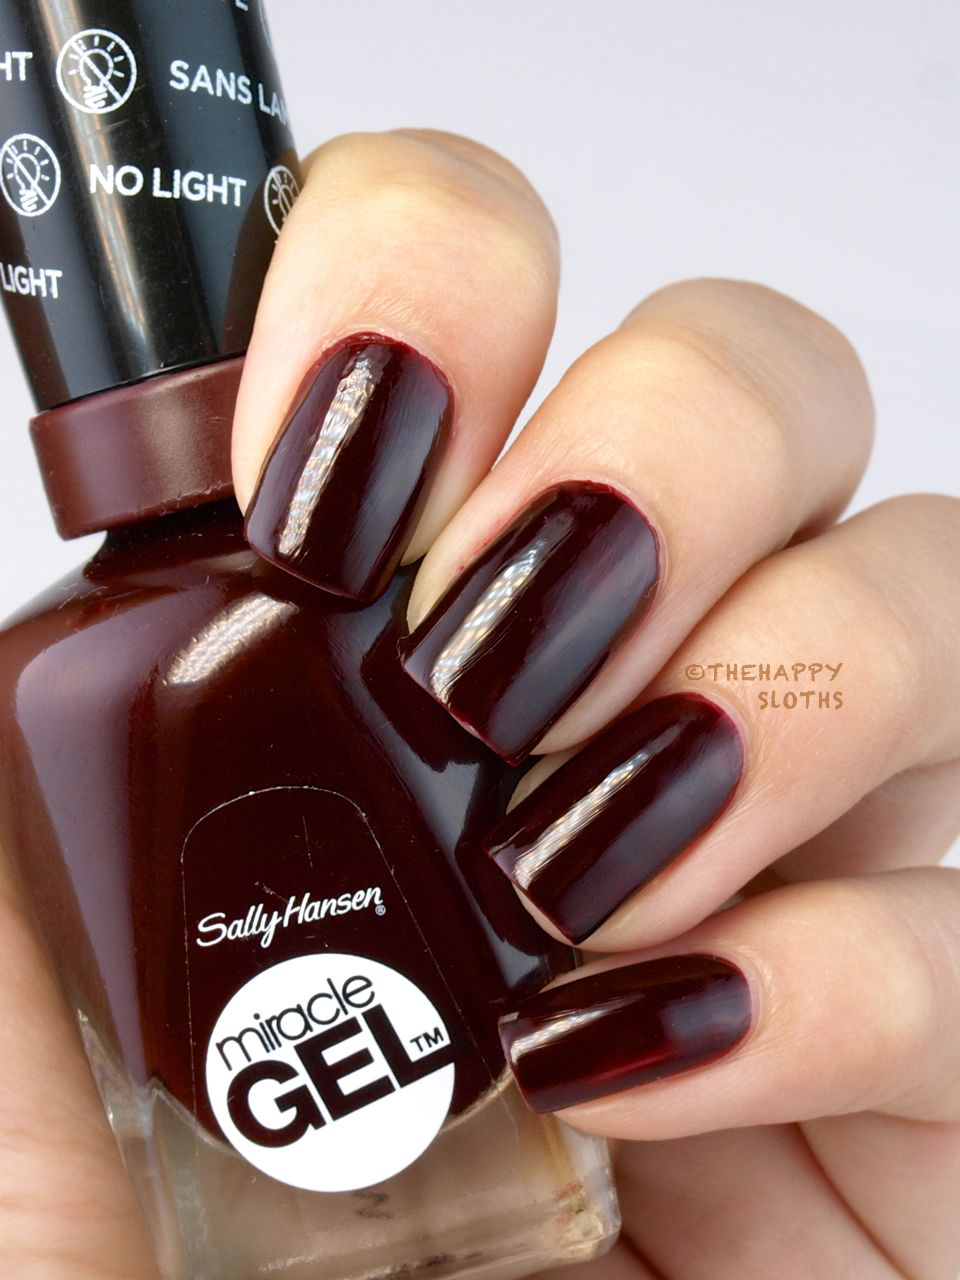 The next best thing to a salon gel manicure that you can do at home The longer lasting manicure Number 1 selling gel polish in the US* #1 Nail Color* *Nielsen $ 52W w/e Search.. Sally Hansen.